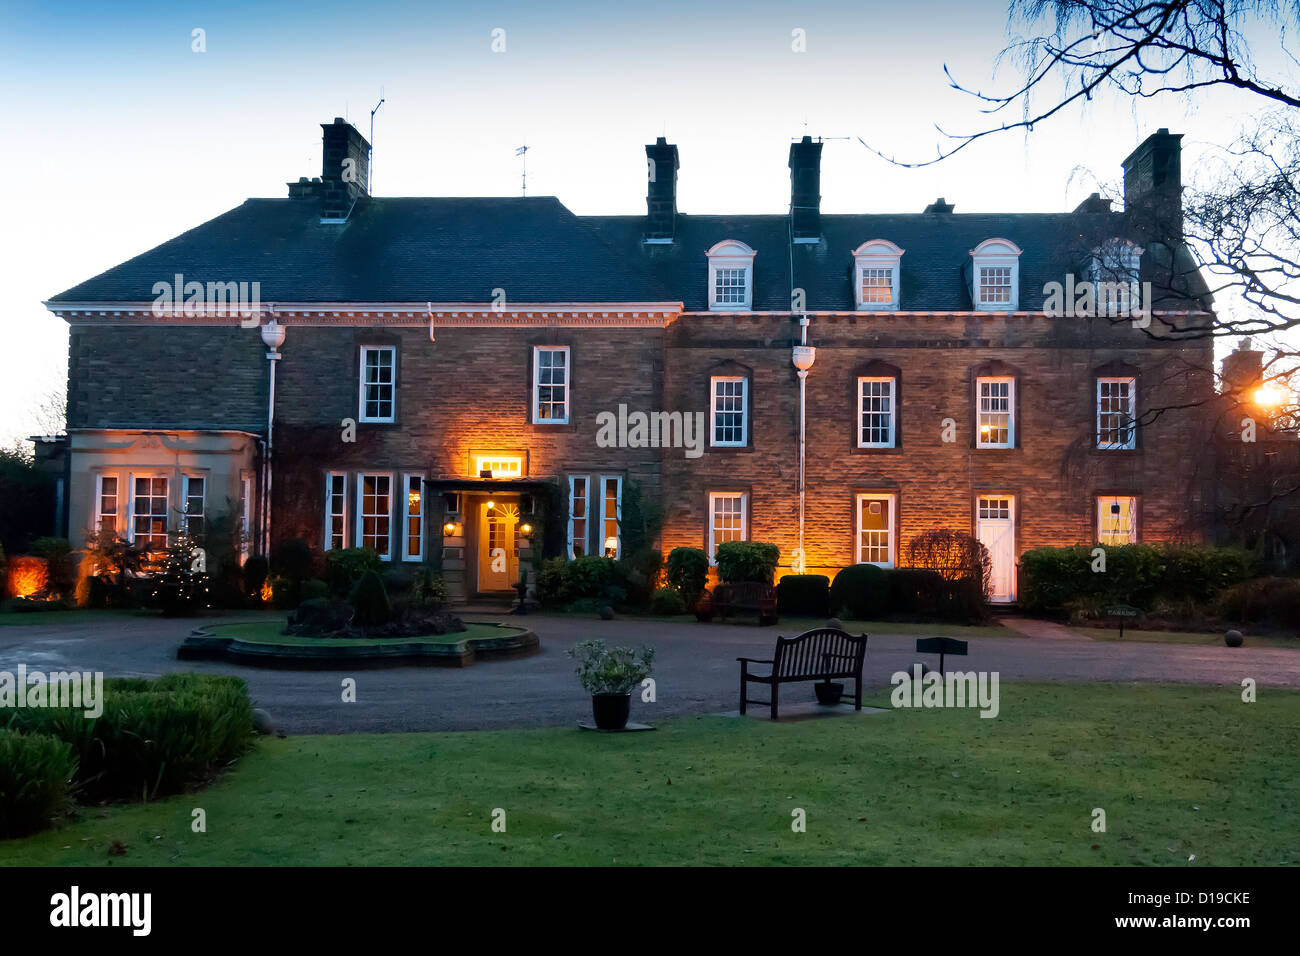 House design yarm - Judges Hotel At Kirklevington Hall Yarm Cleveland Former Residence For Judges Attending The Local Assize Courts